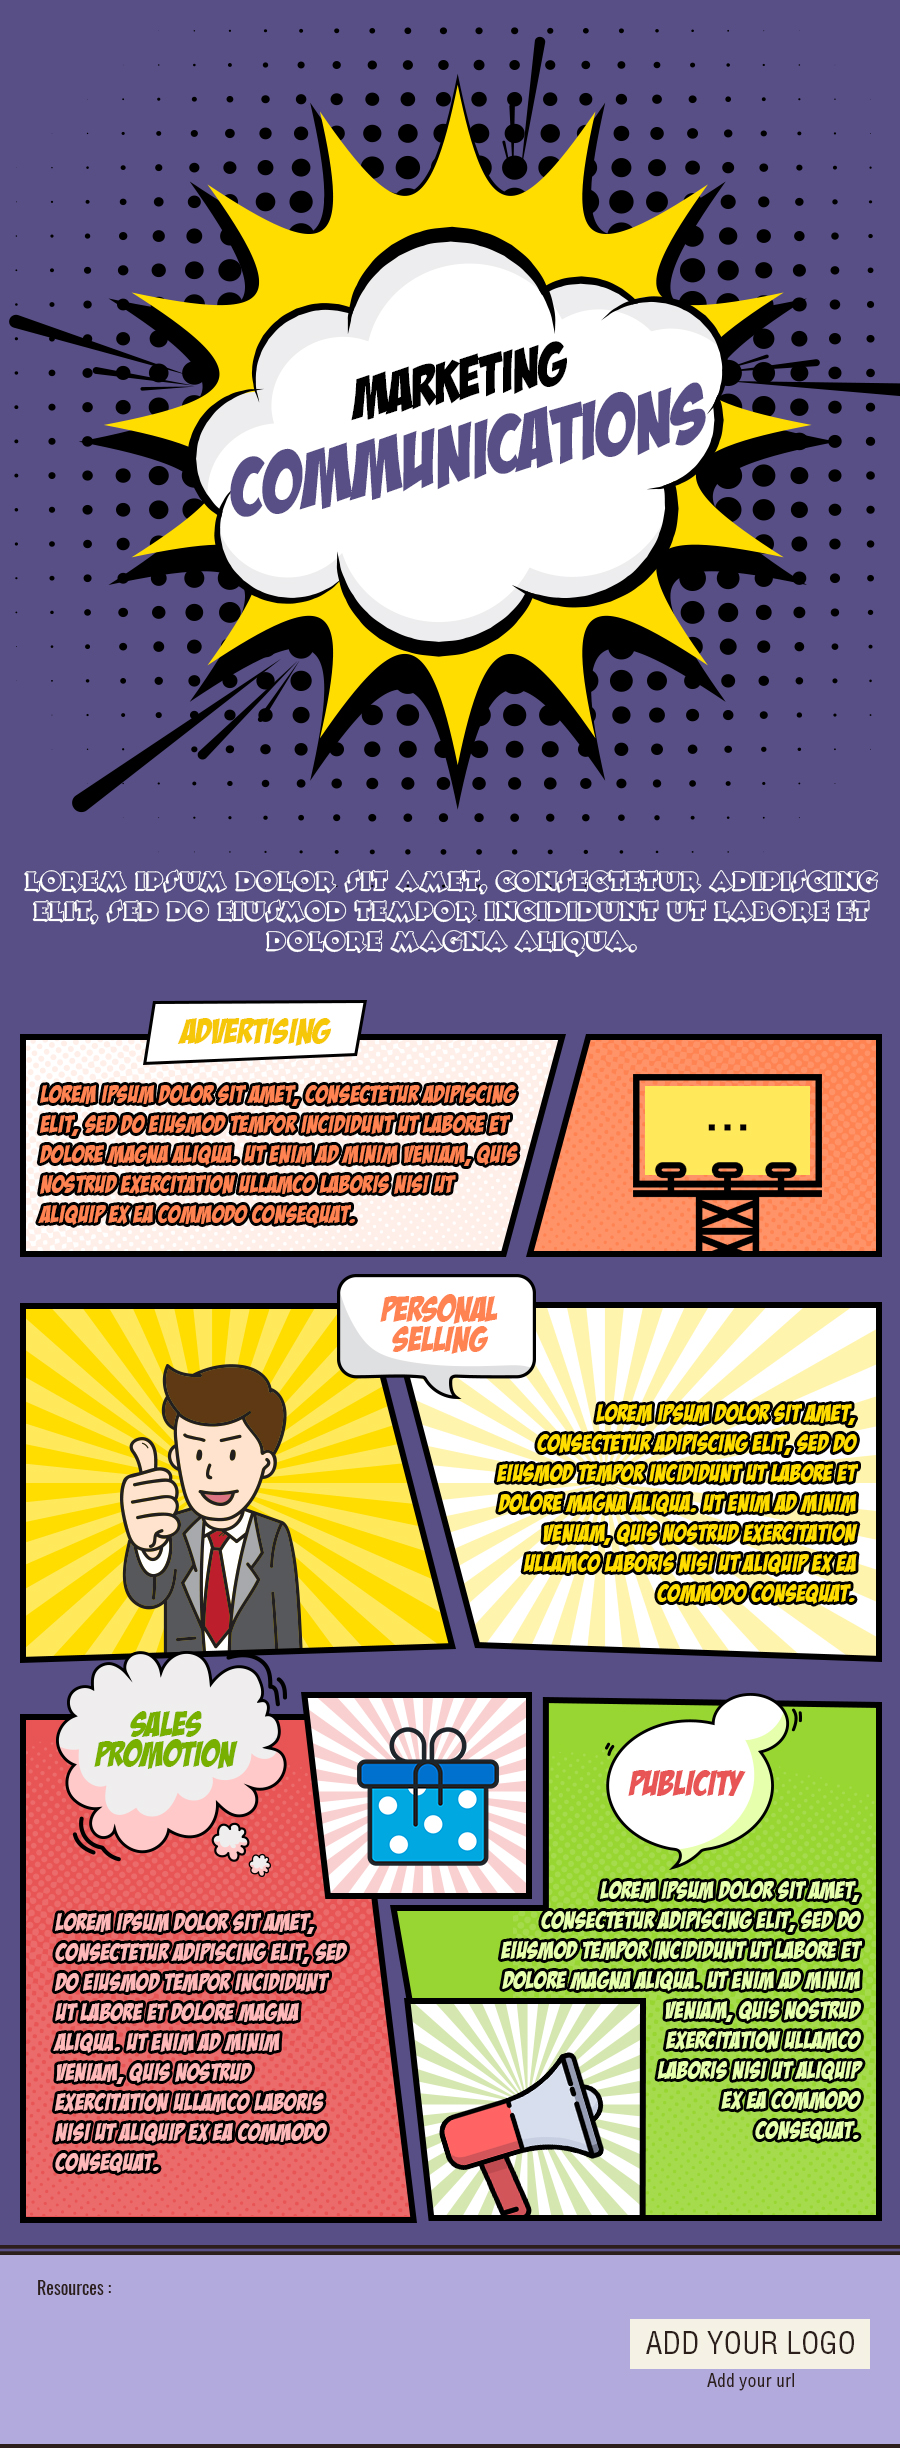 Marketing Communications Free Infographic Template - GifographicsCo